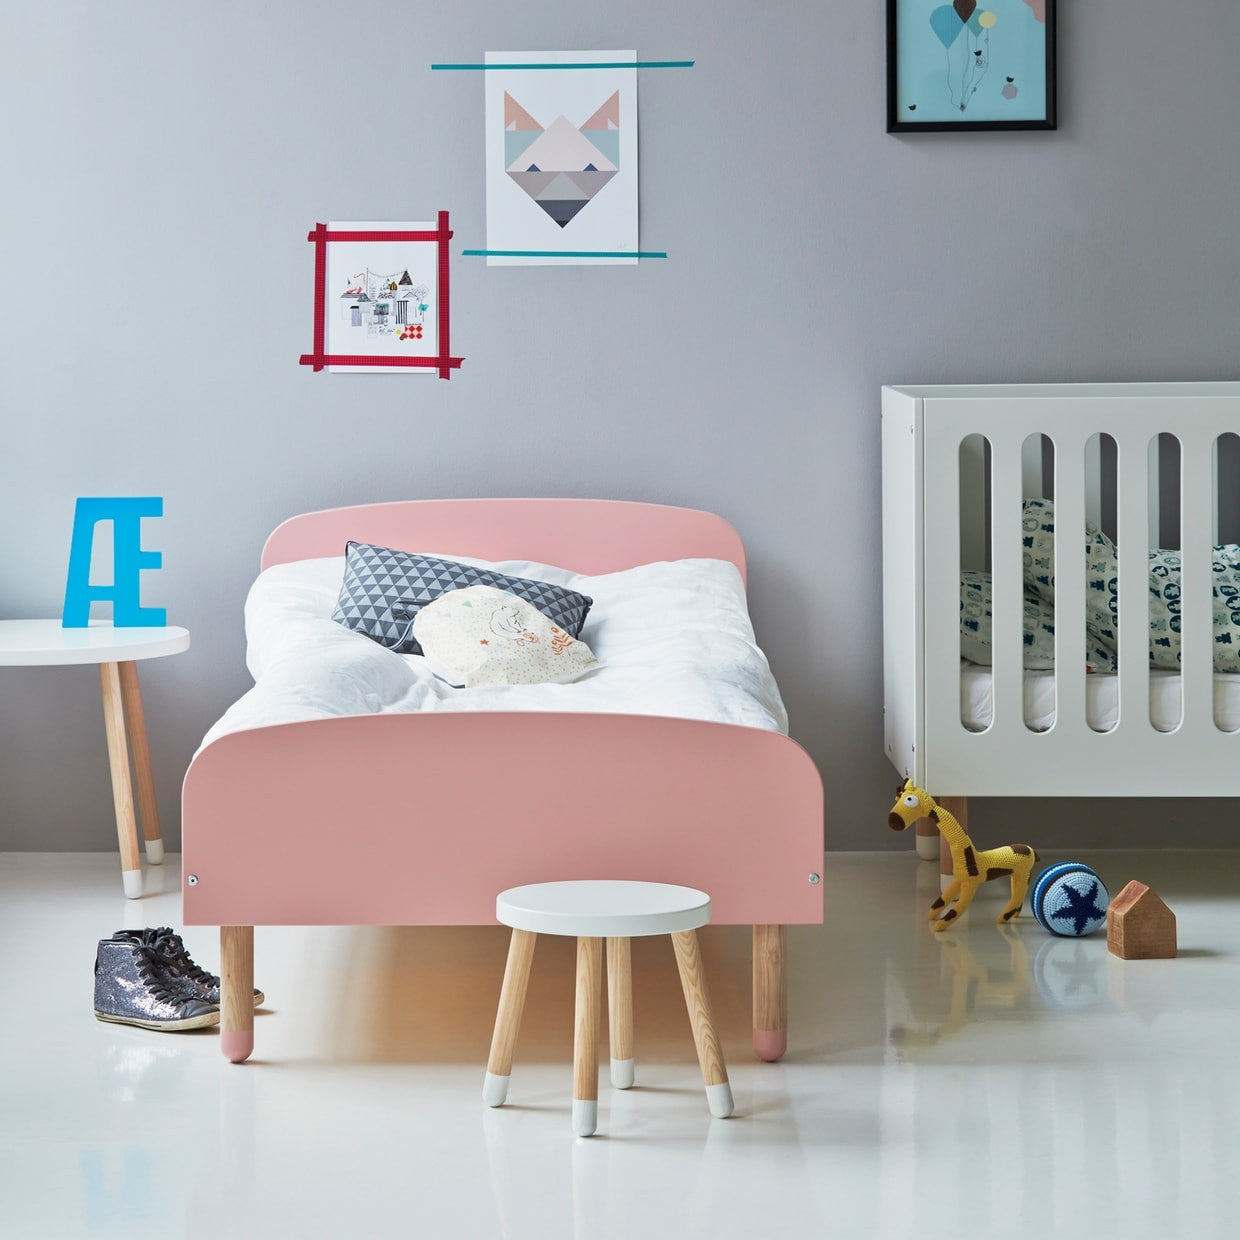 flexa kinderbett play in rosa online kaufen kidswoodlove. Black Bedroom Furniture Sets. Home Design Ideas